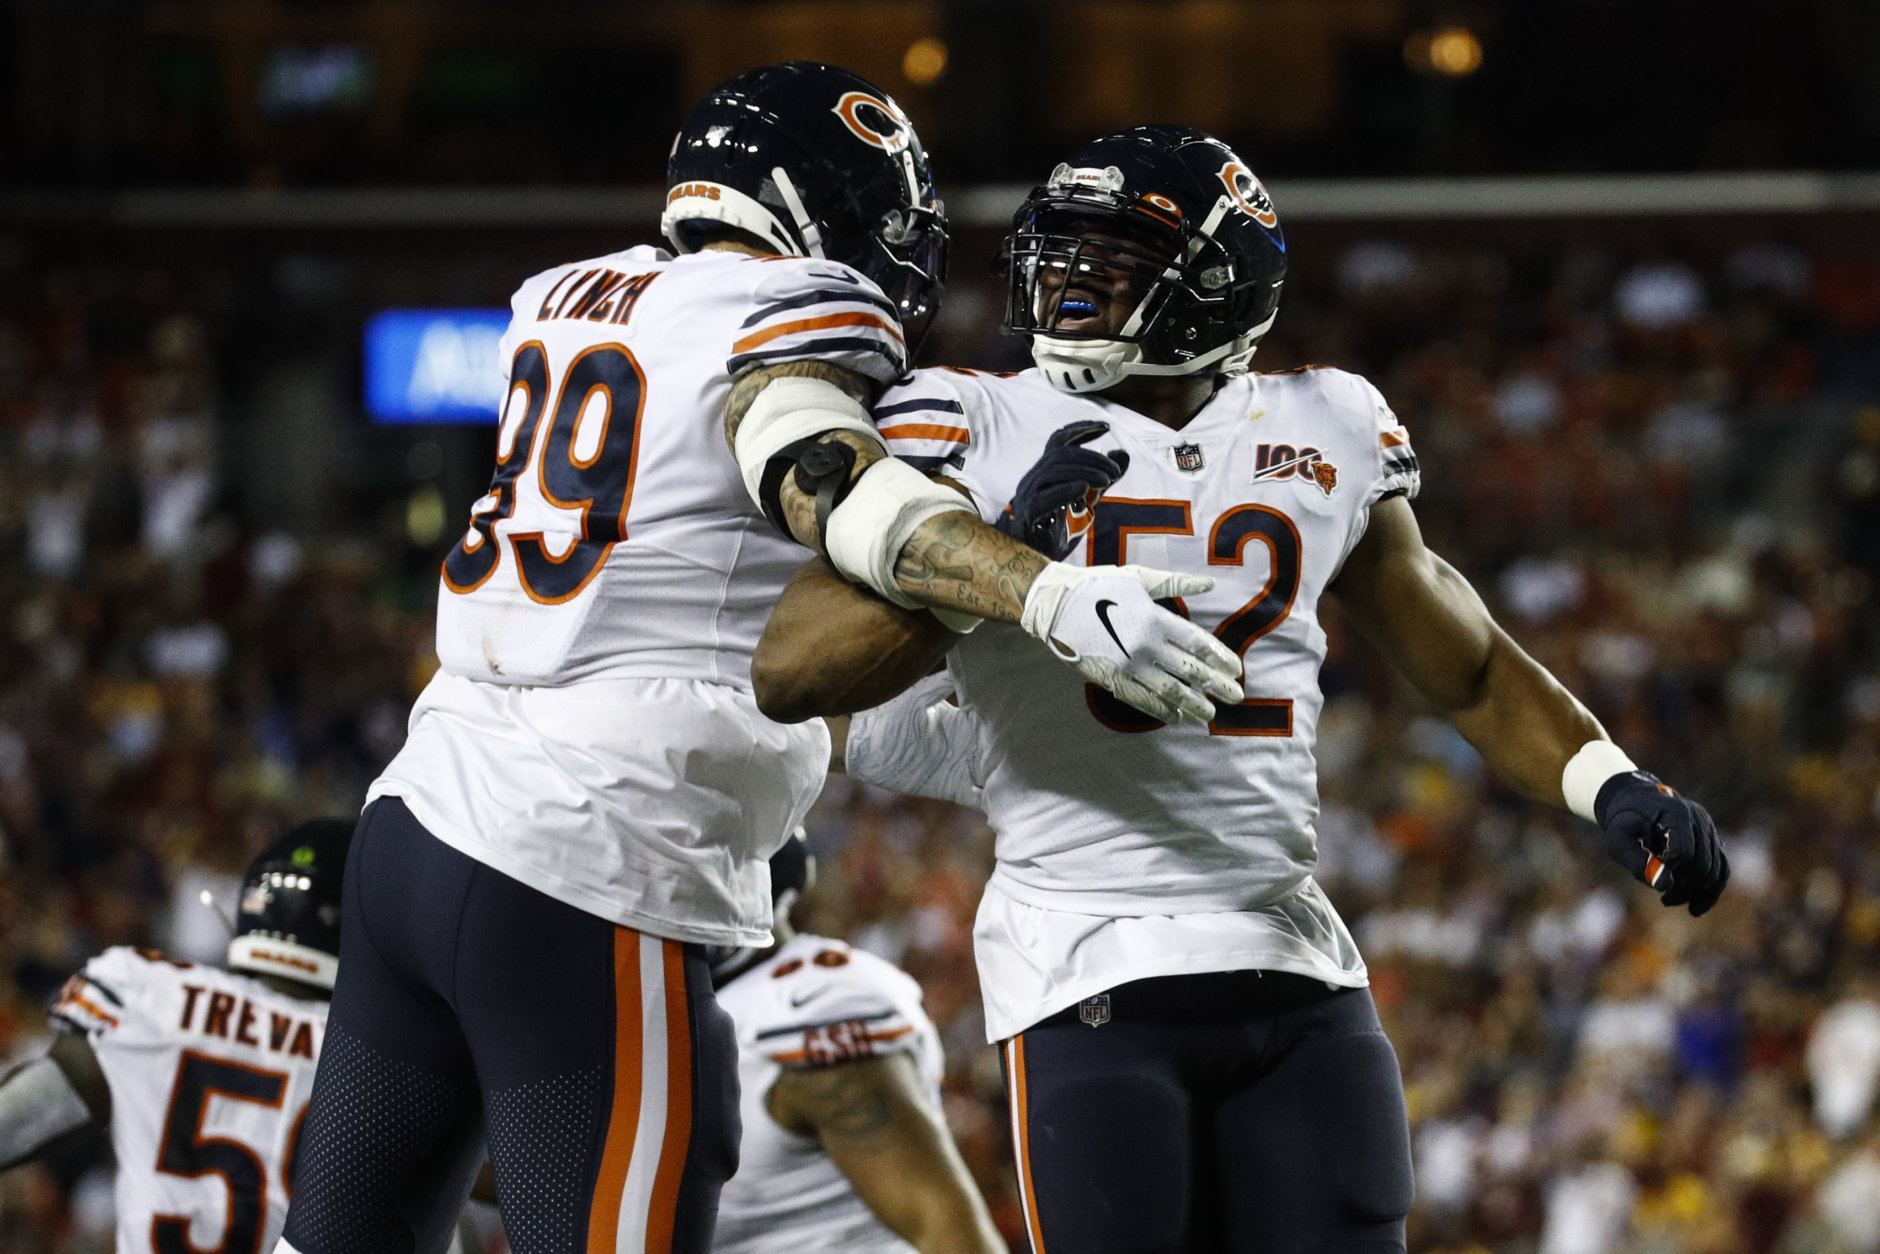 Chicago Bears linebackers Aaron Lynch (99) and Khalil Mack (52) celebrate Mack's hit to cause a fumble by the Washington Redskins during the first half of an NFL football game Monday, Sept. 23, 2019, in Landover, Md. (AP Photo/Patrick Semansky)